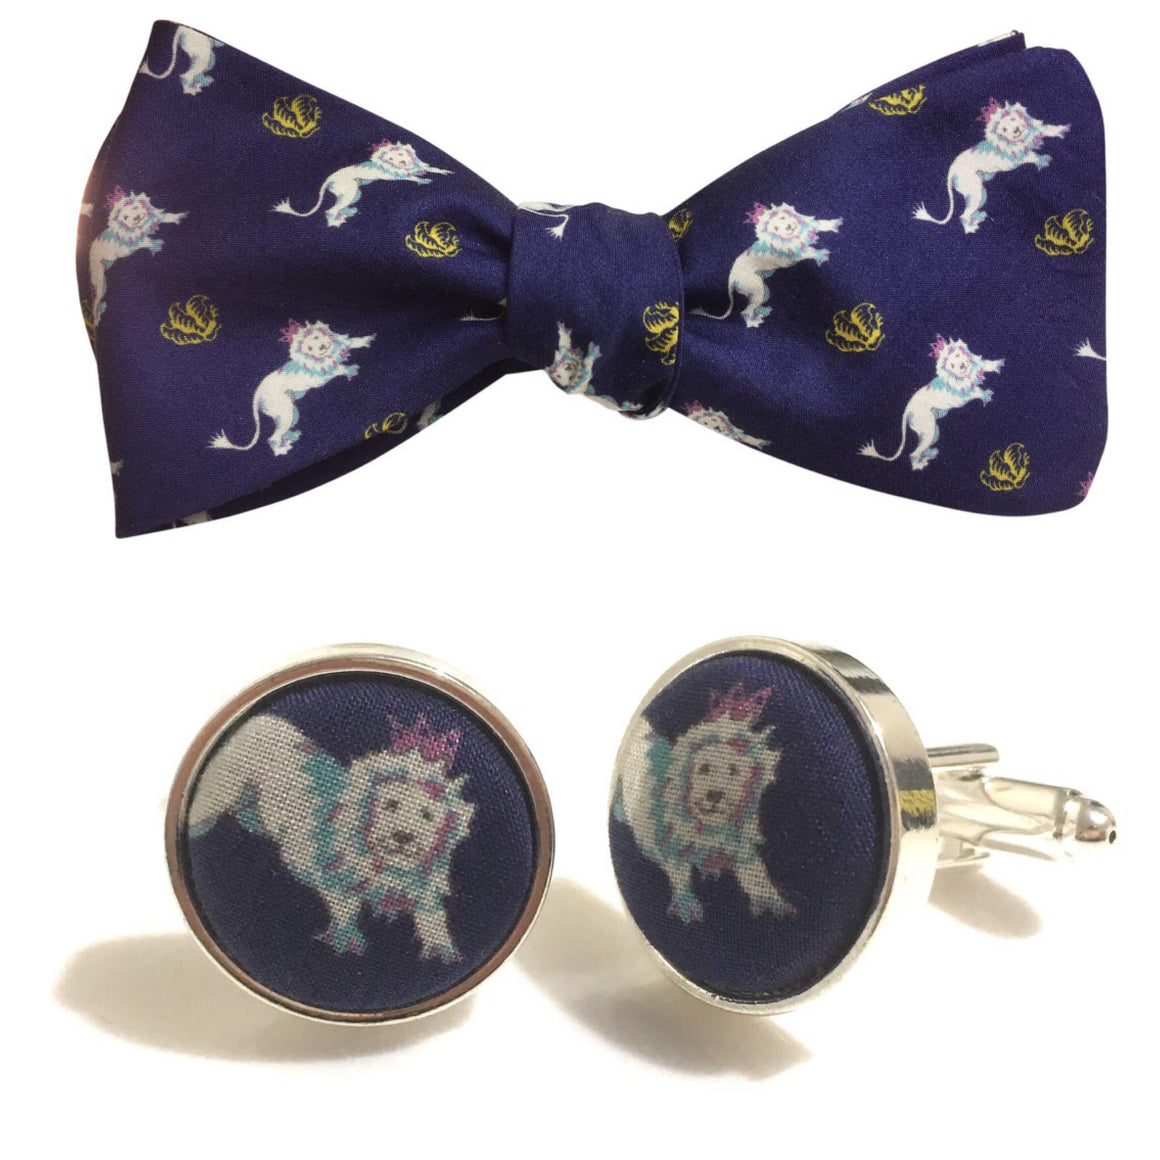 Liberty of London Lions Bow Tie & Matching Cufflink Set